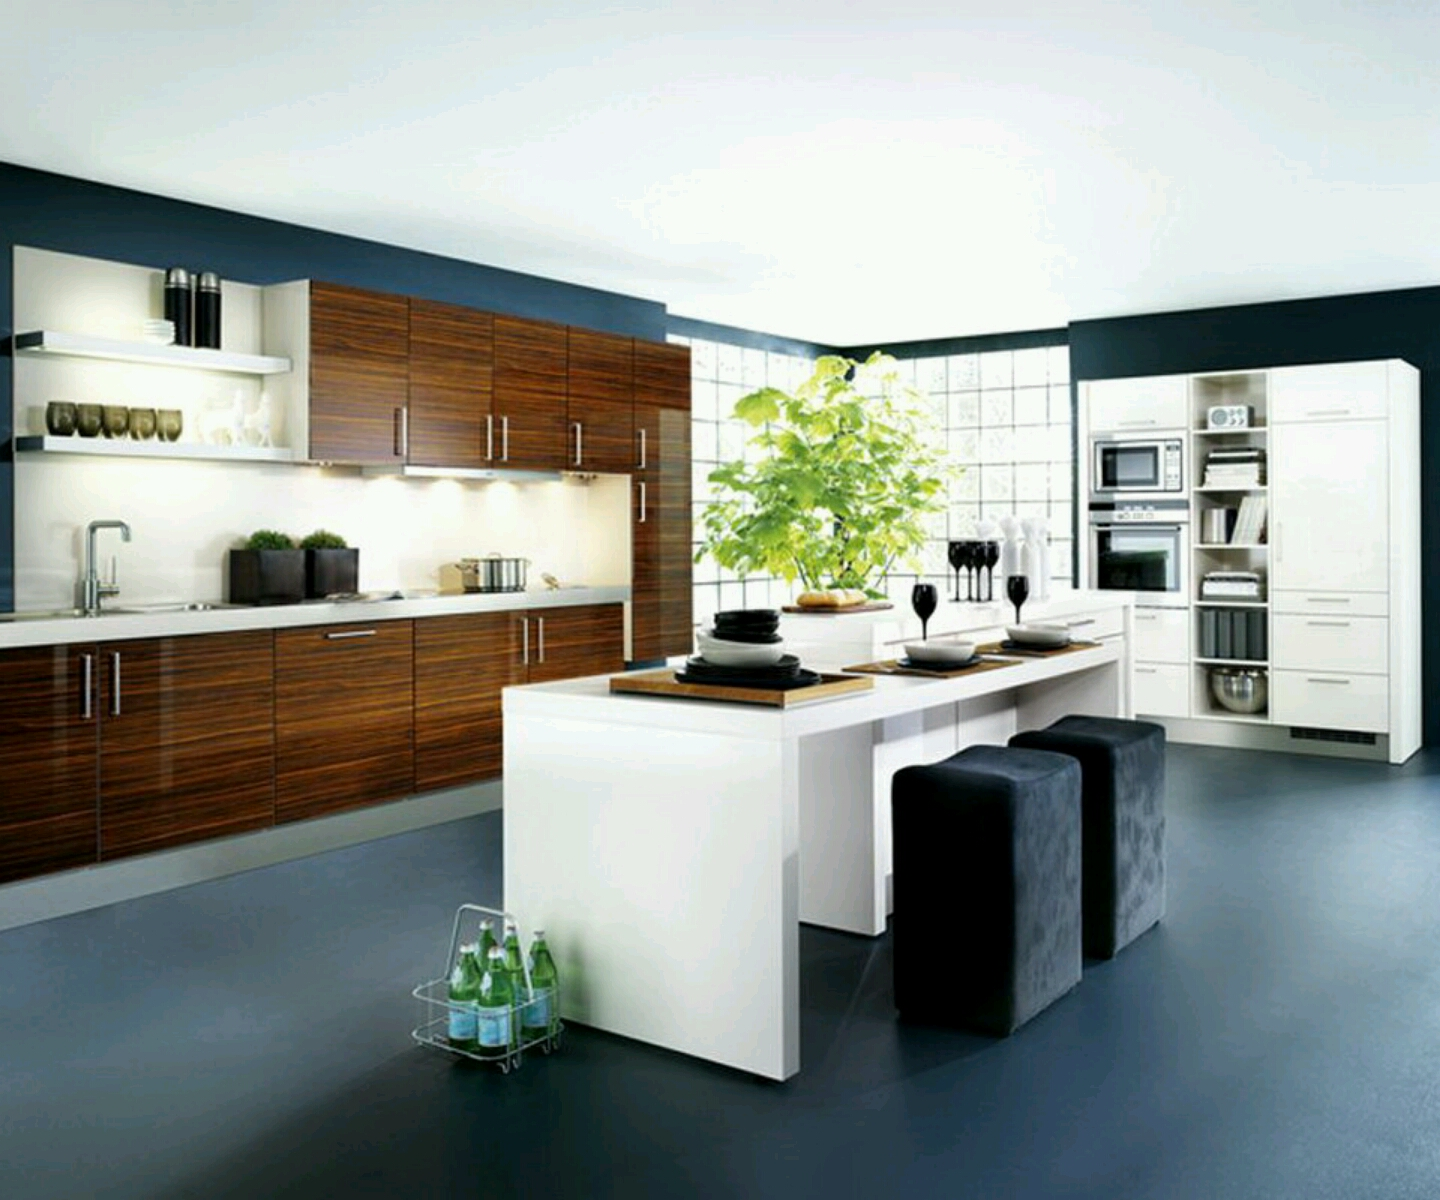 New home designs latest kitchen cabinets designs modern for Modern cabinets kitchen